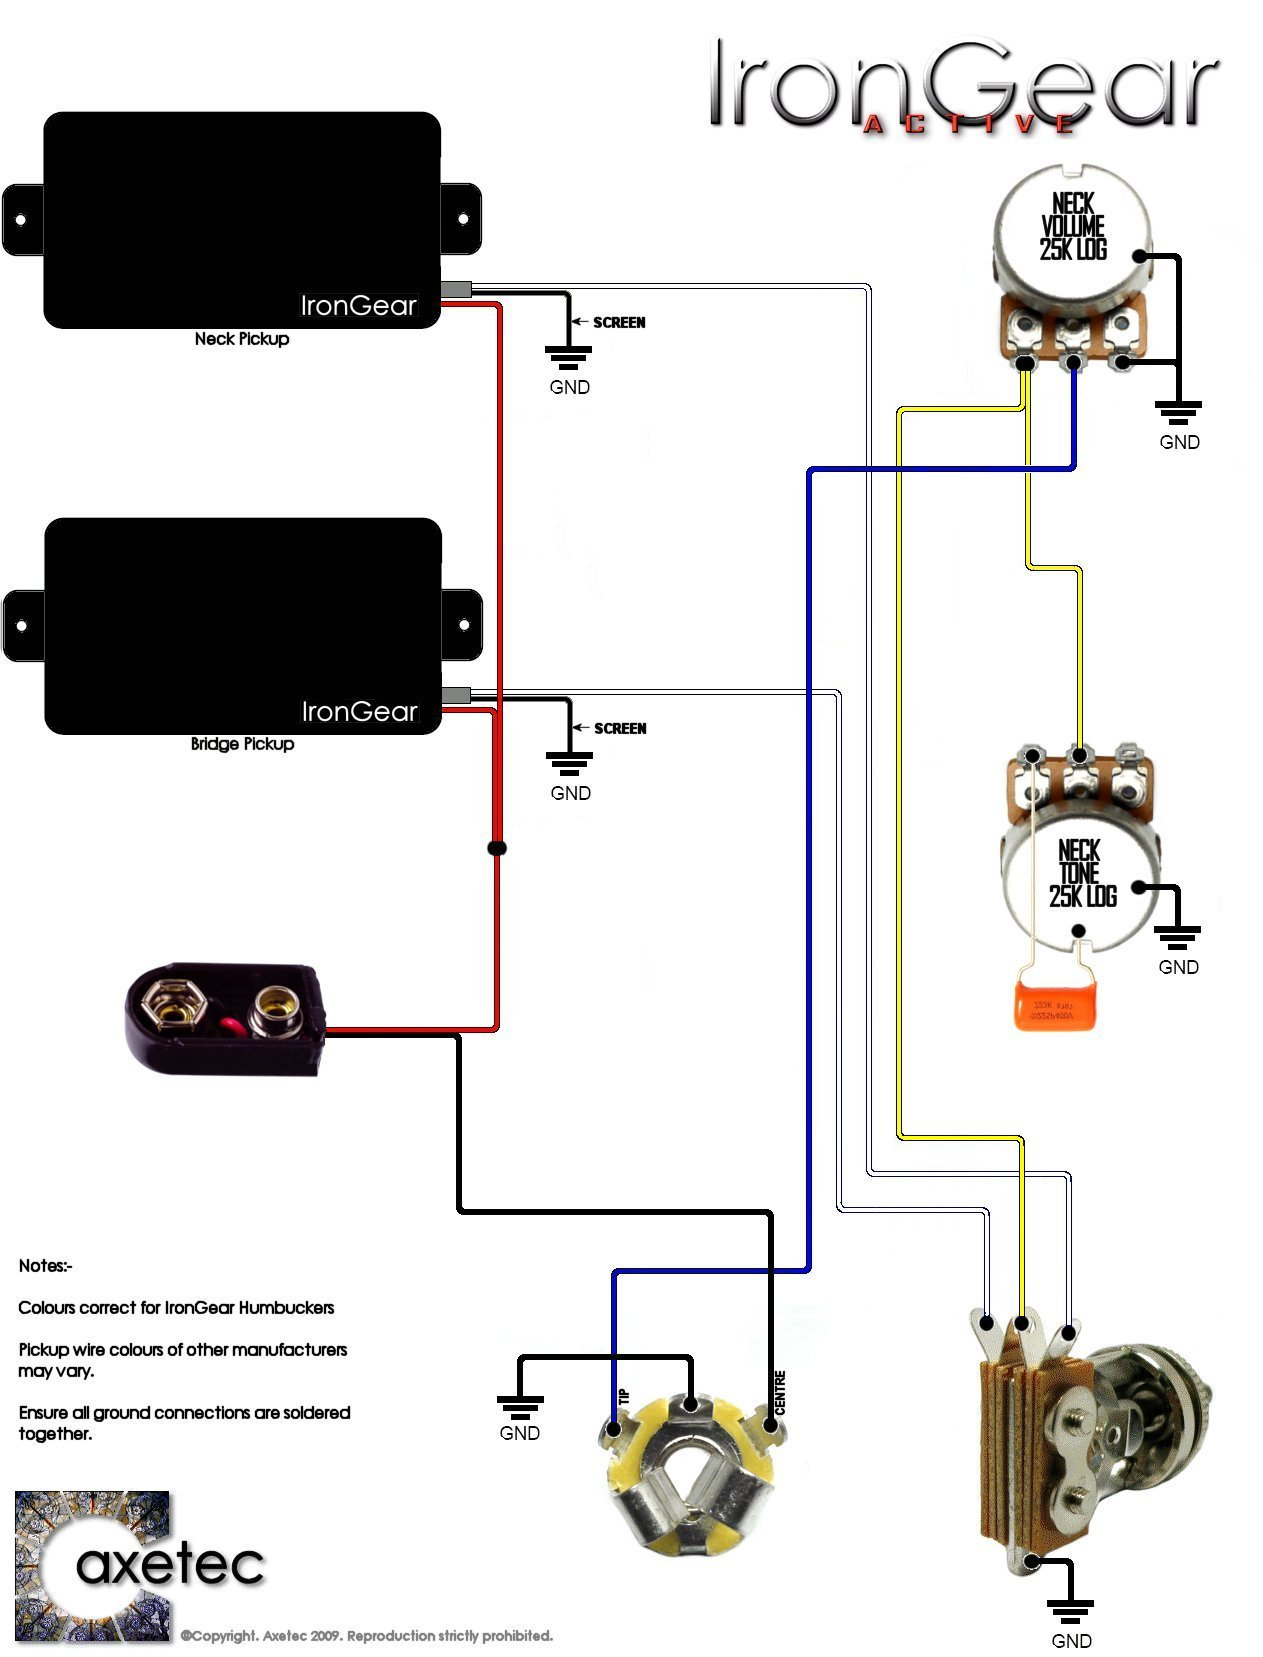 2_x_active_humbuckers_ _1vol__1tone__3way_toggle_v02 irongear pickups wiring iron gear wiring diagrams at reclaimingppi.co